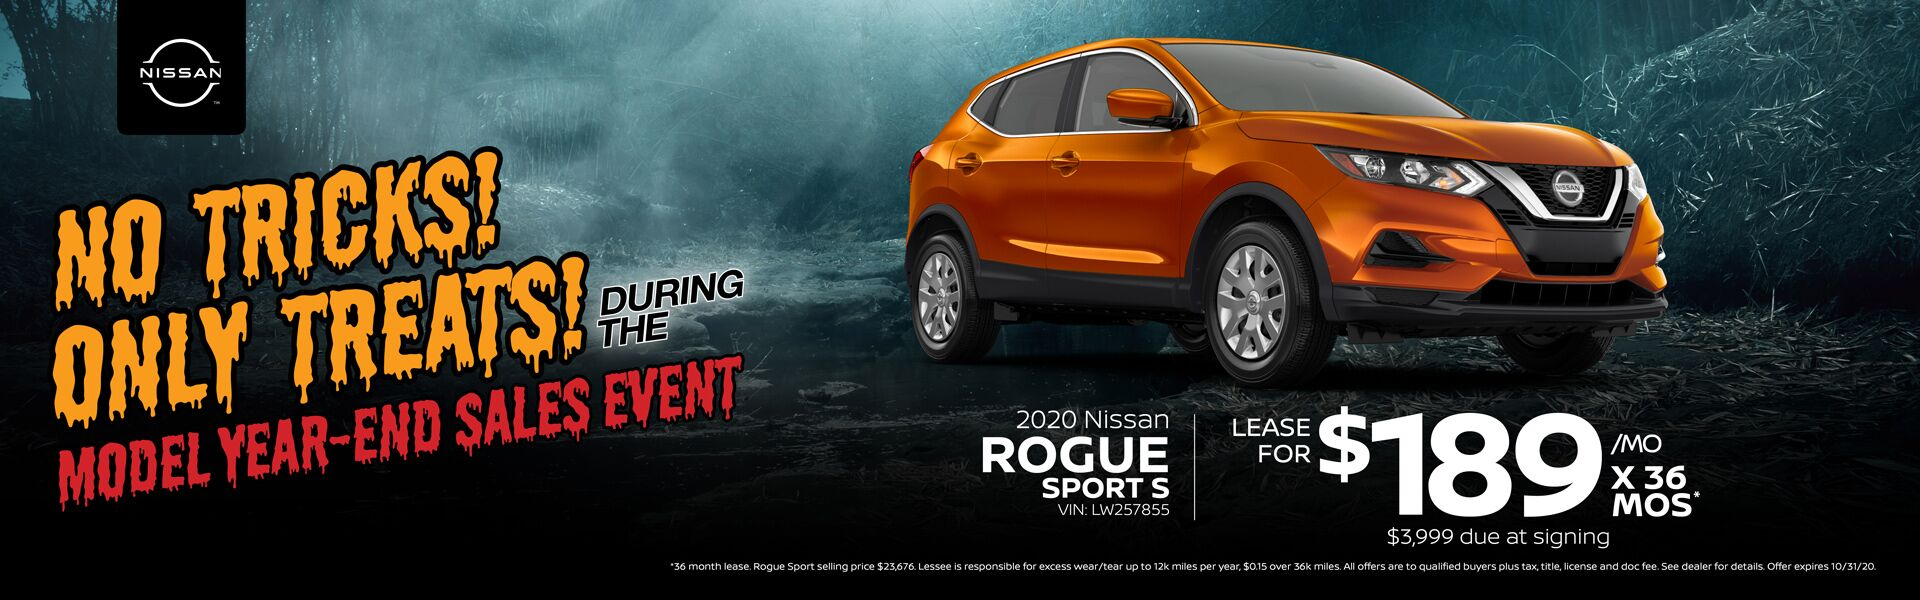 2020 Nissan Rogue Lease for $189/mo x 36 mos.